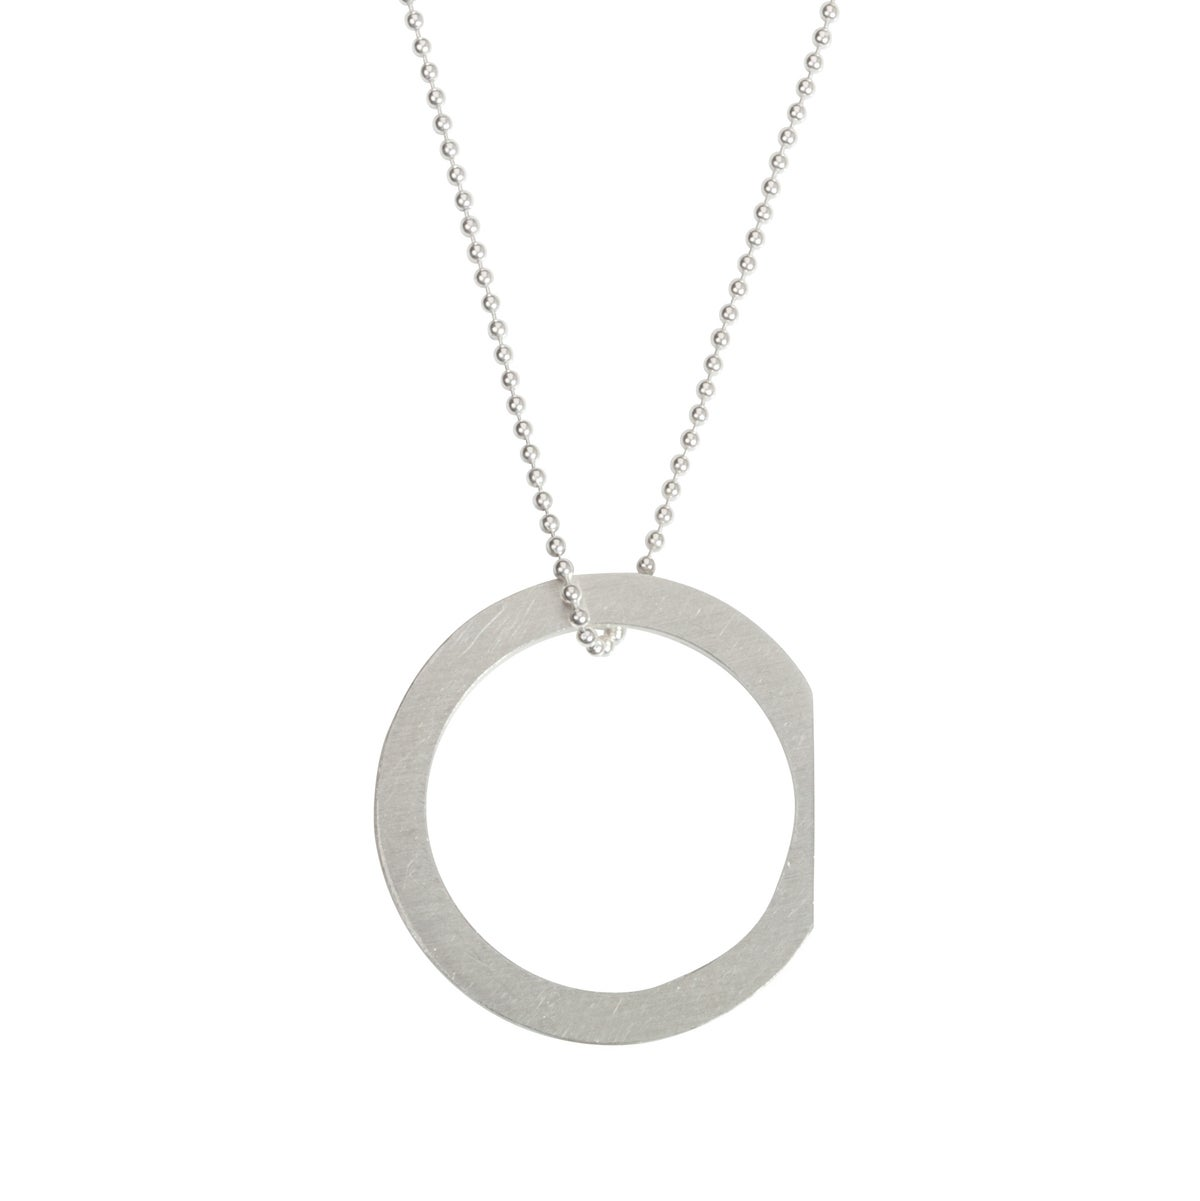 Image of Convertible necklace/ring 'Circle+|- #4 Chop'